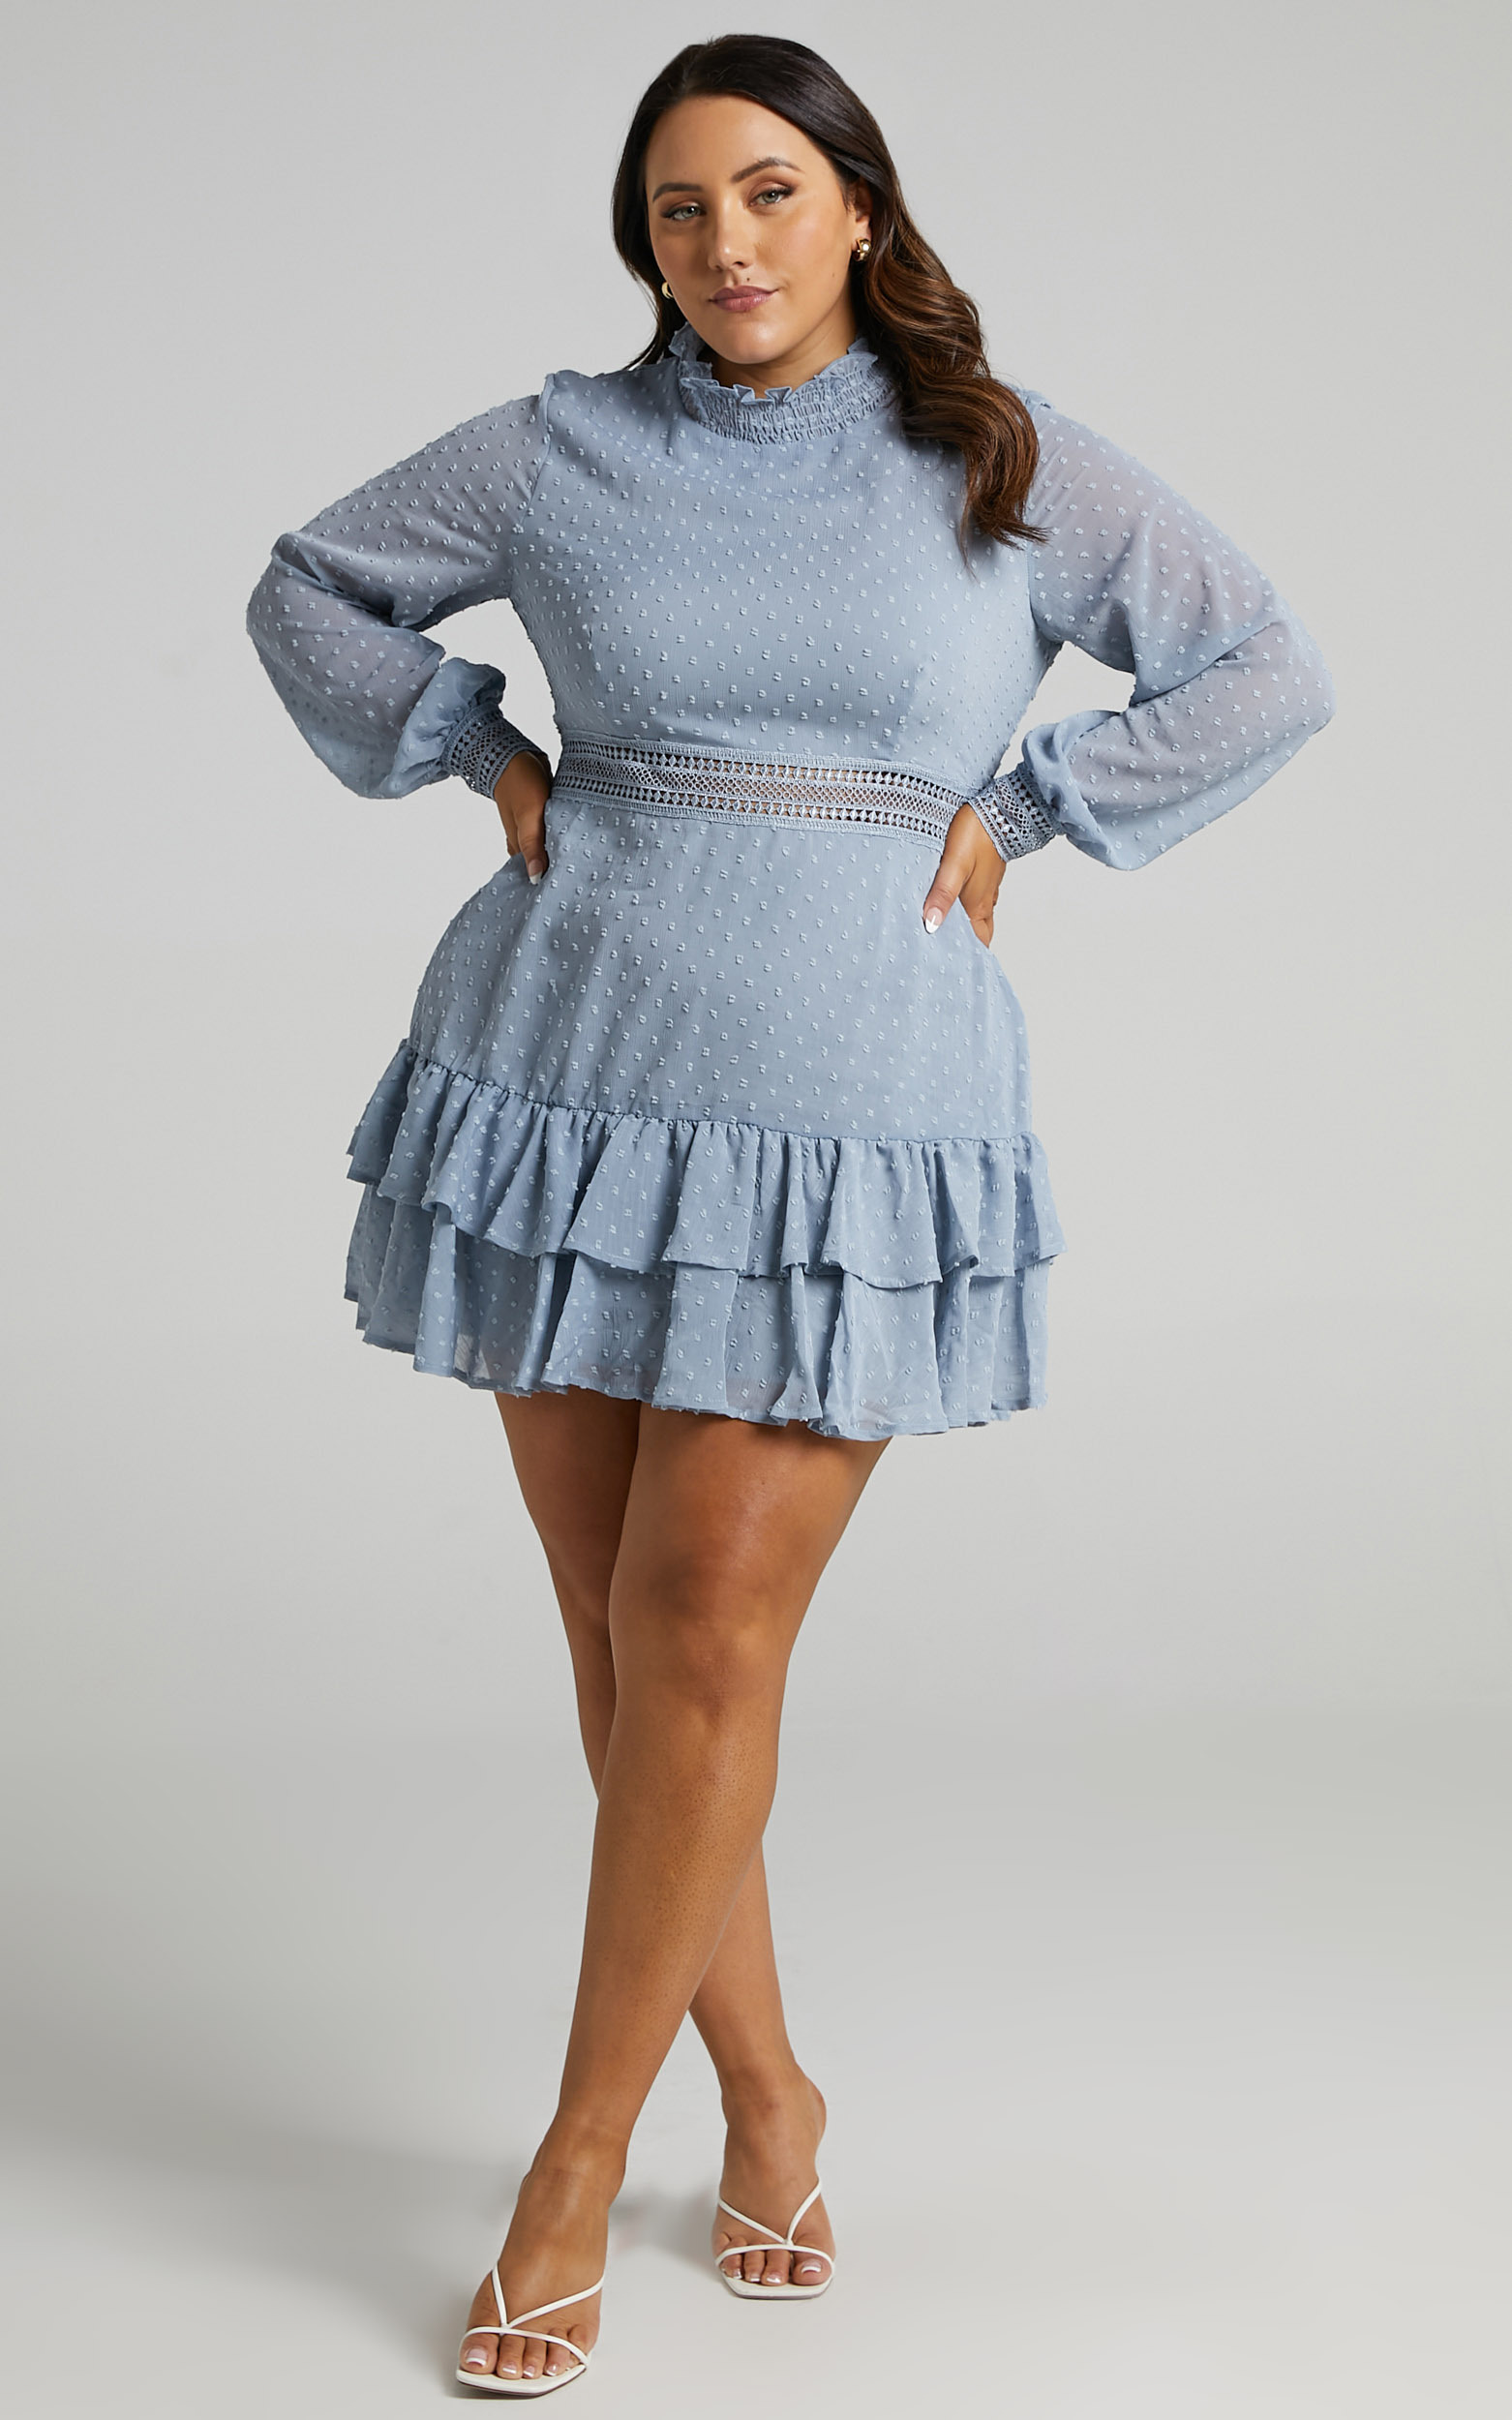 Are You Gonna Kiss Me Dress in Dusty Blue - 20, BLU3, hi-res image number null